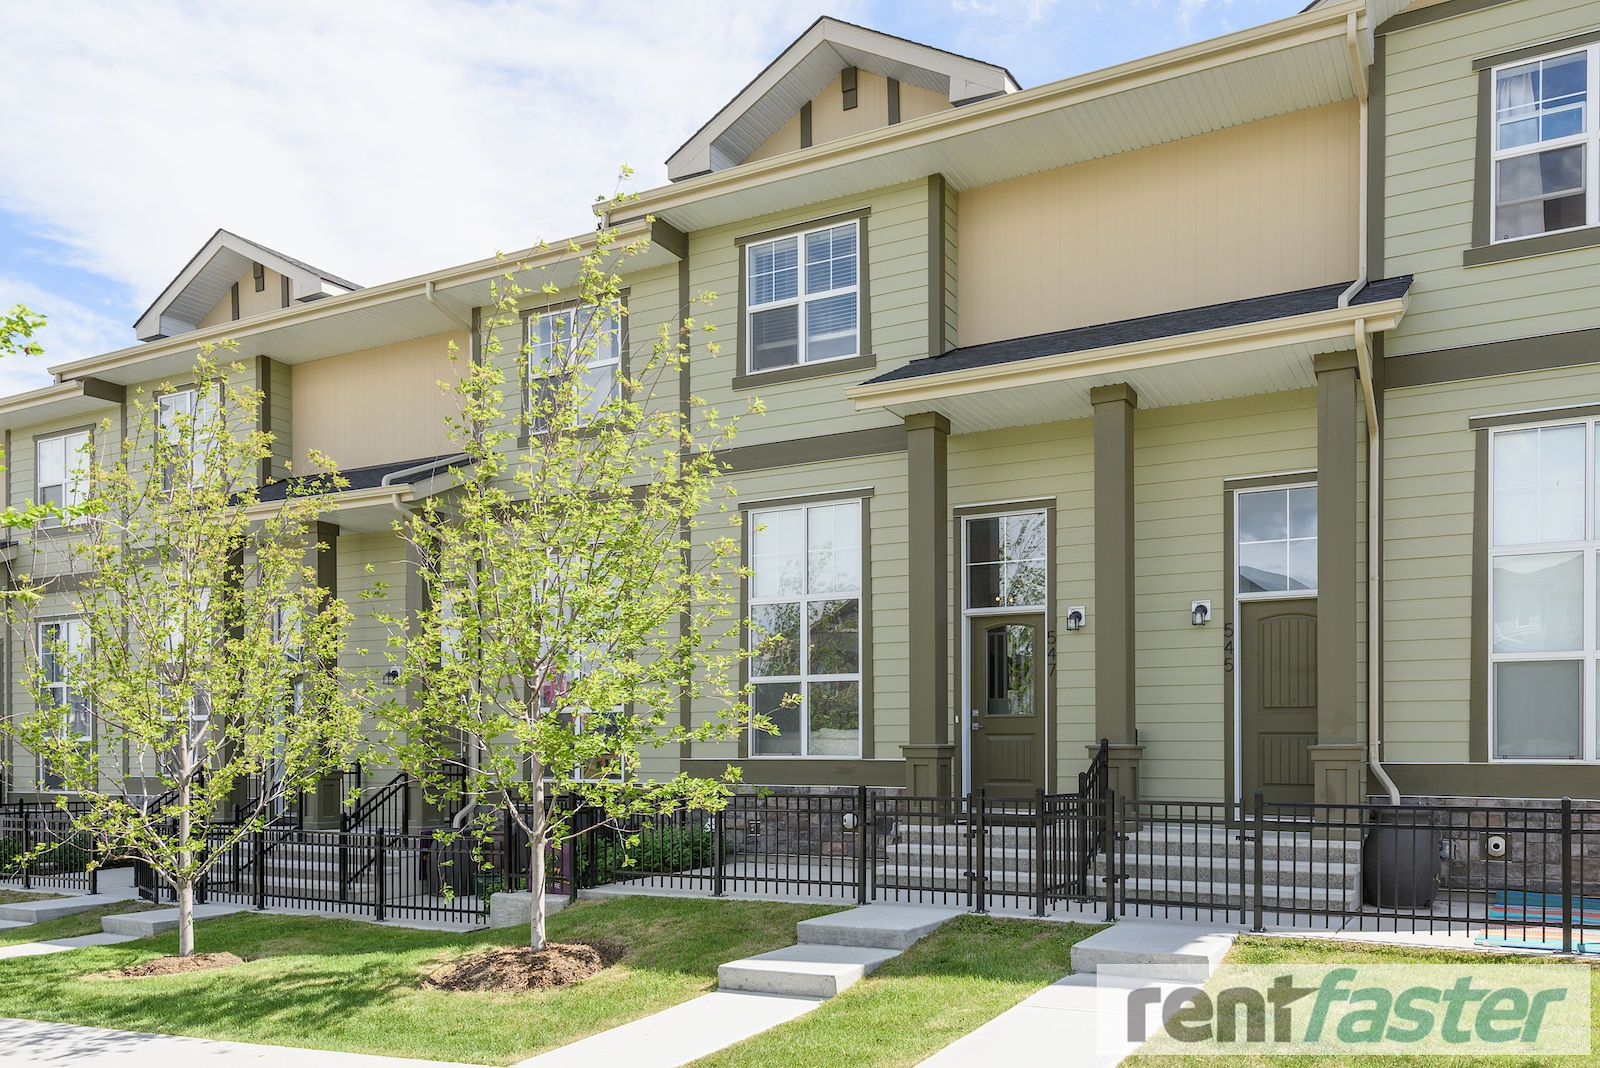 Calgary Evanston Townhouse For Rent Available October 2 This 2 Bedroom Town Home Is Cute And Ready To Move In We Were H Townhouse Townhouse For Rent Evanston